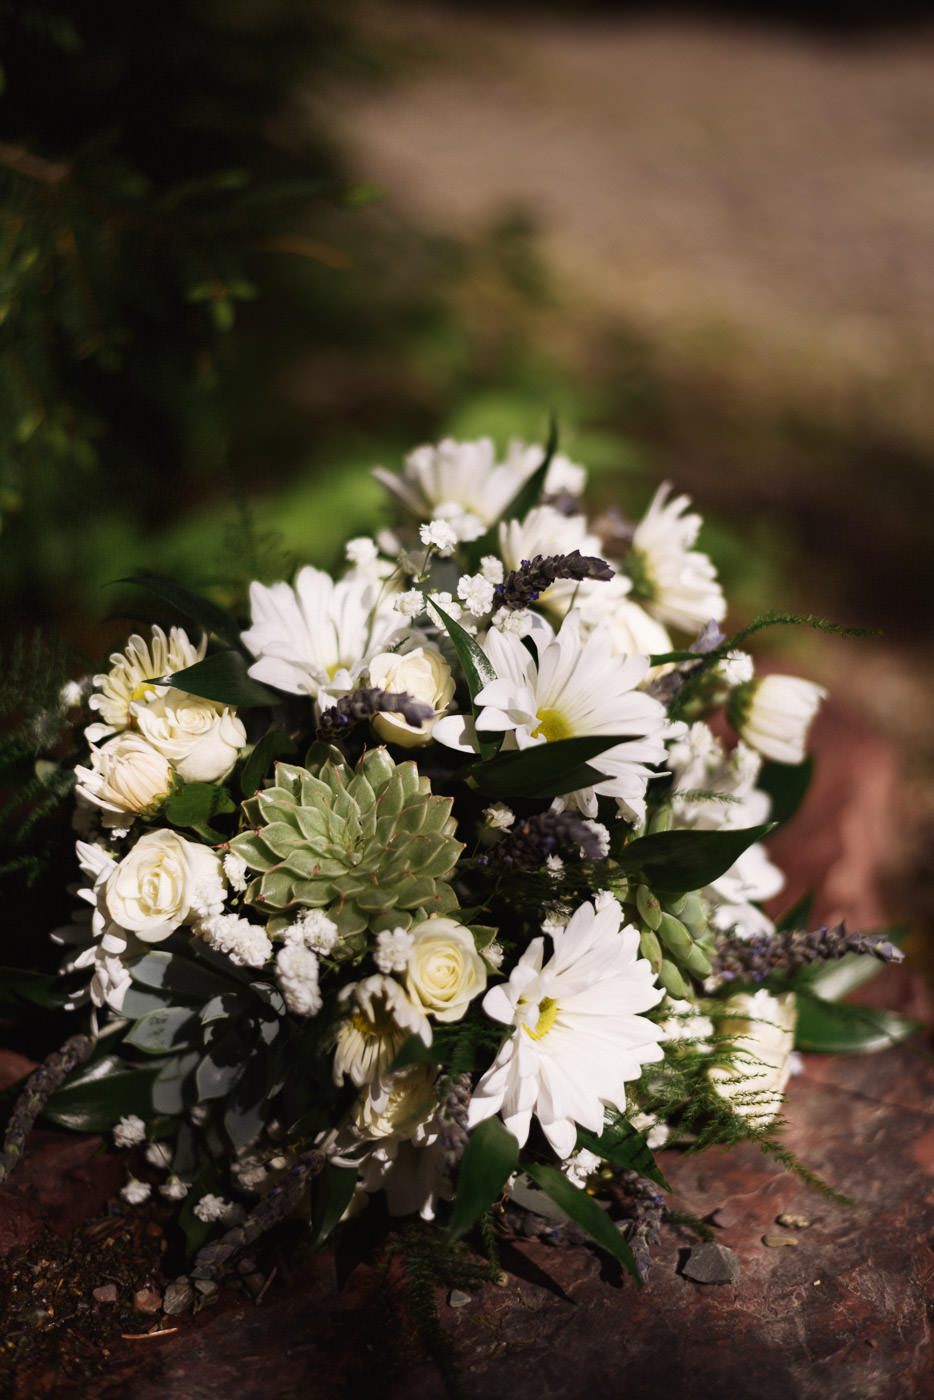 Beautiful white daisy wedding bouquet with succulent details.